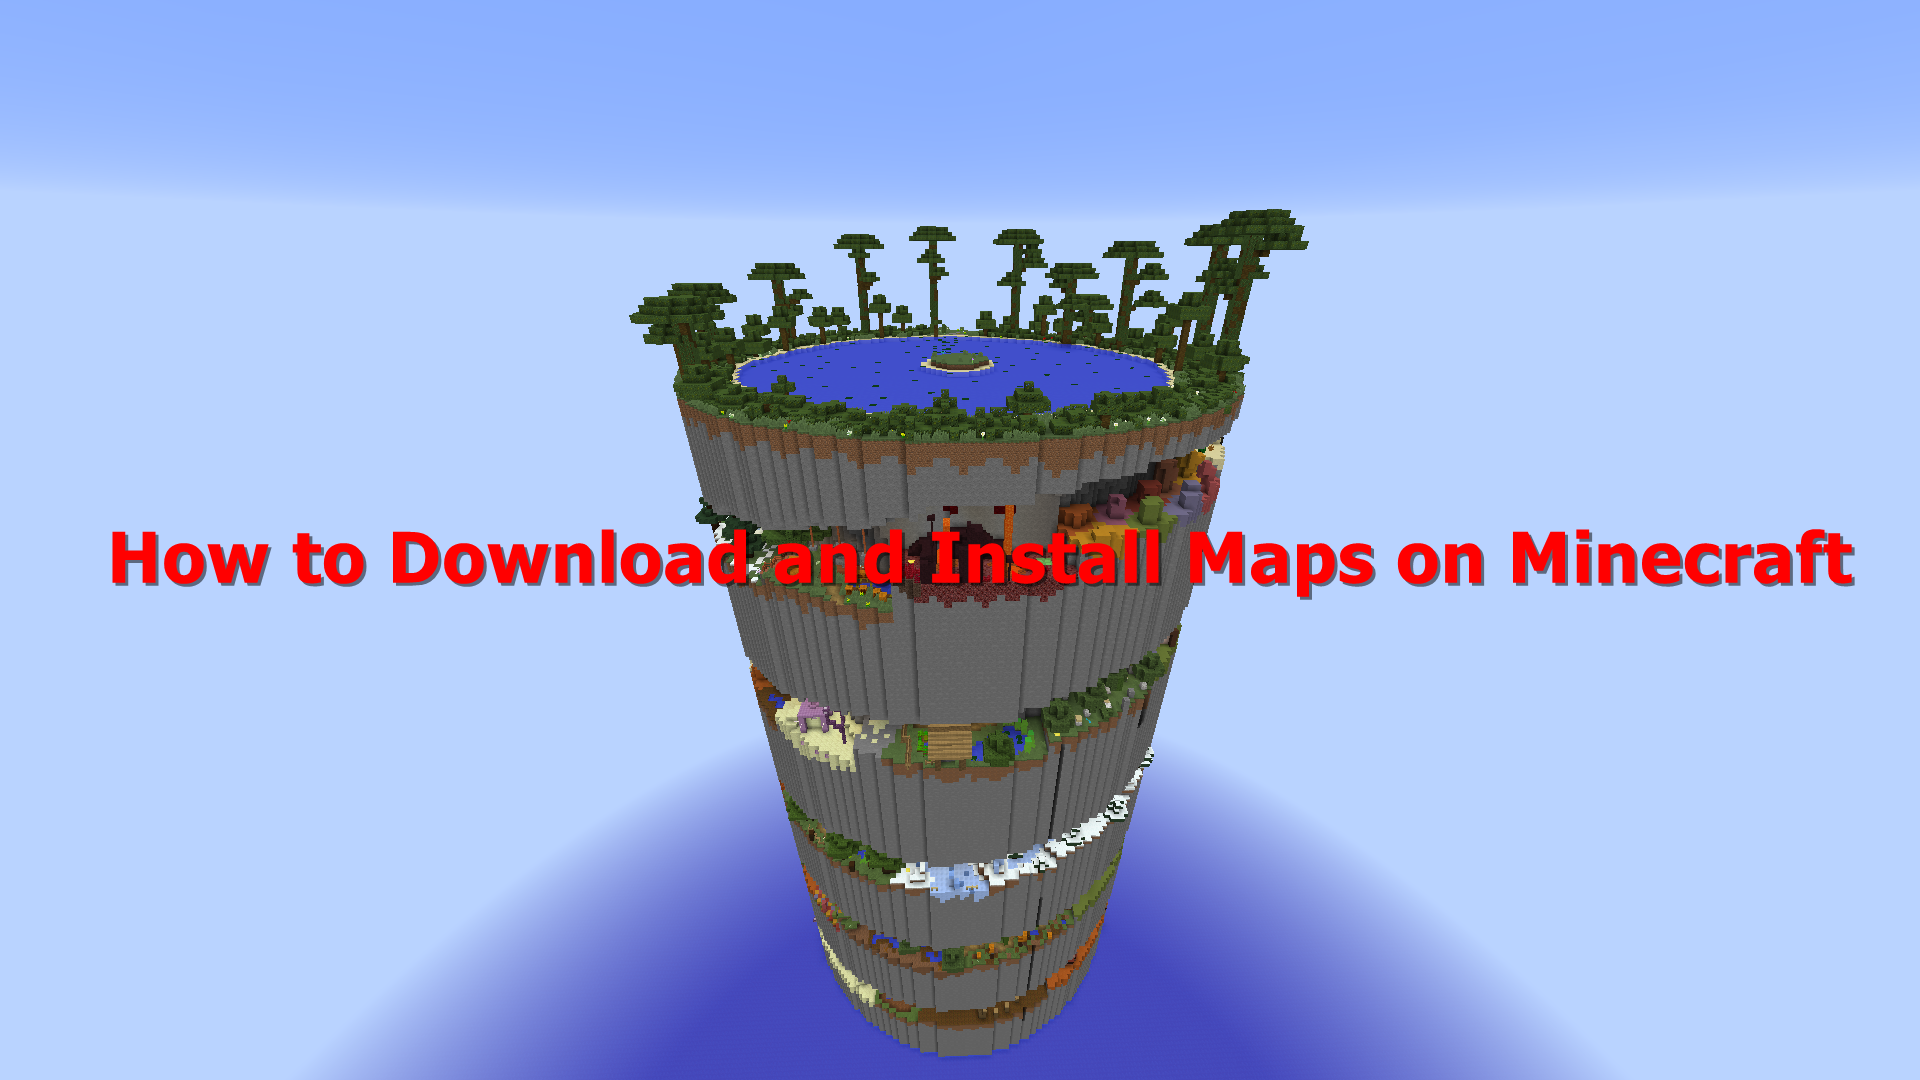 How to Download and Install Maps in Minecraft? - Appuals.com